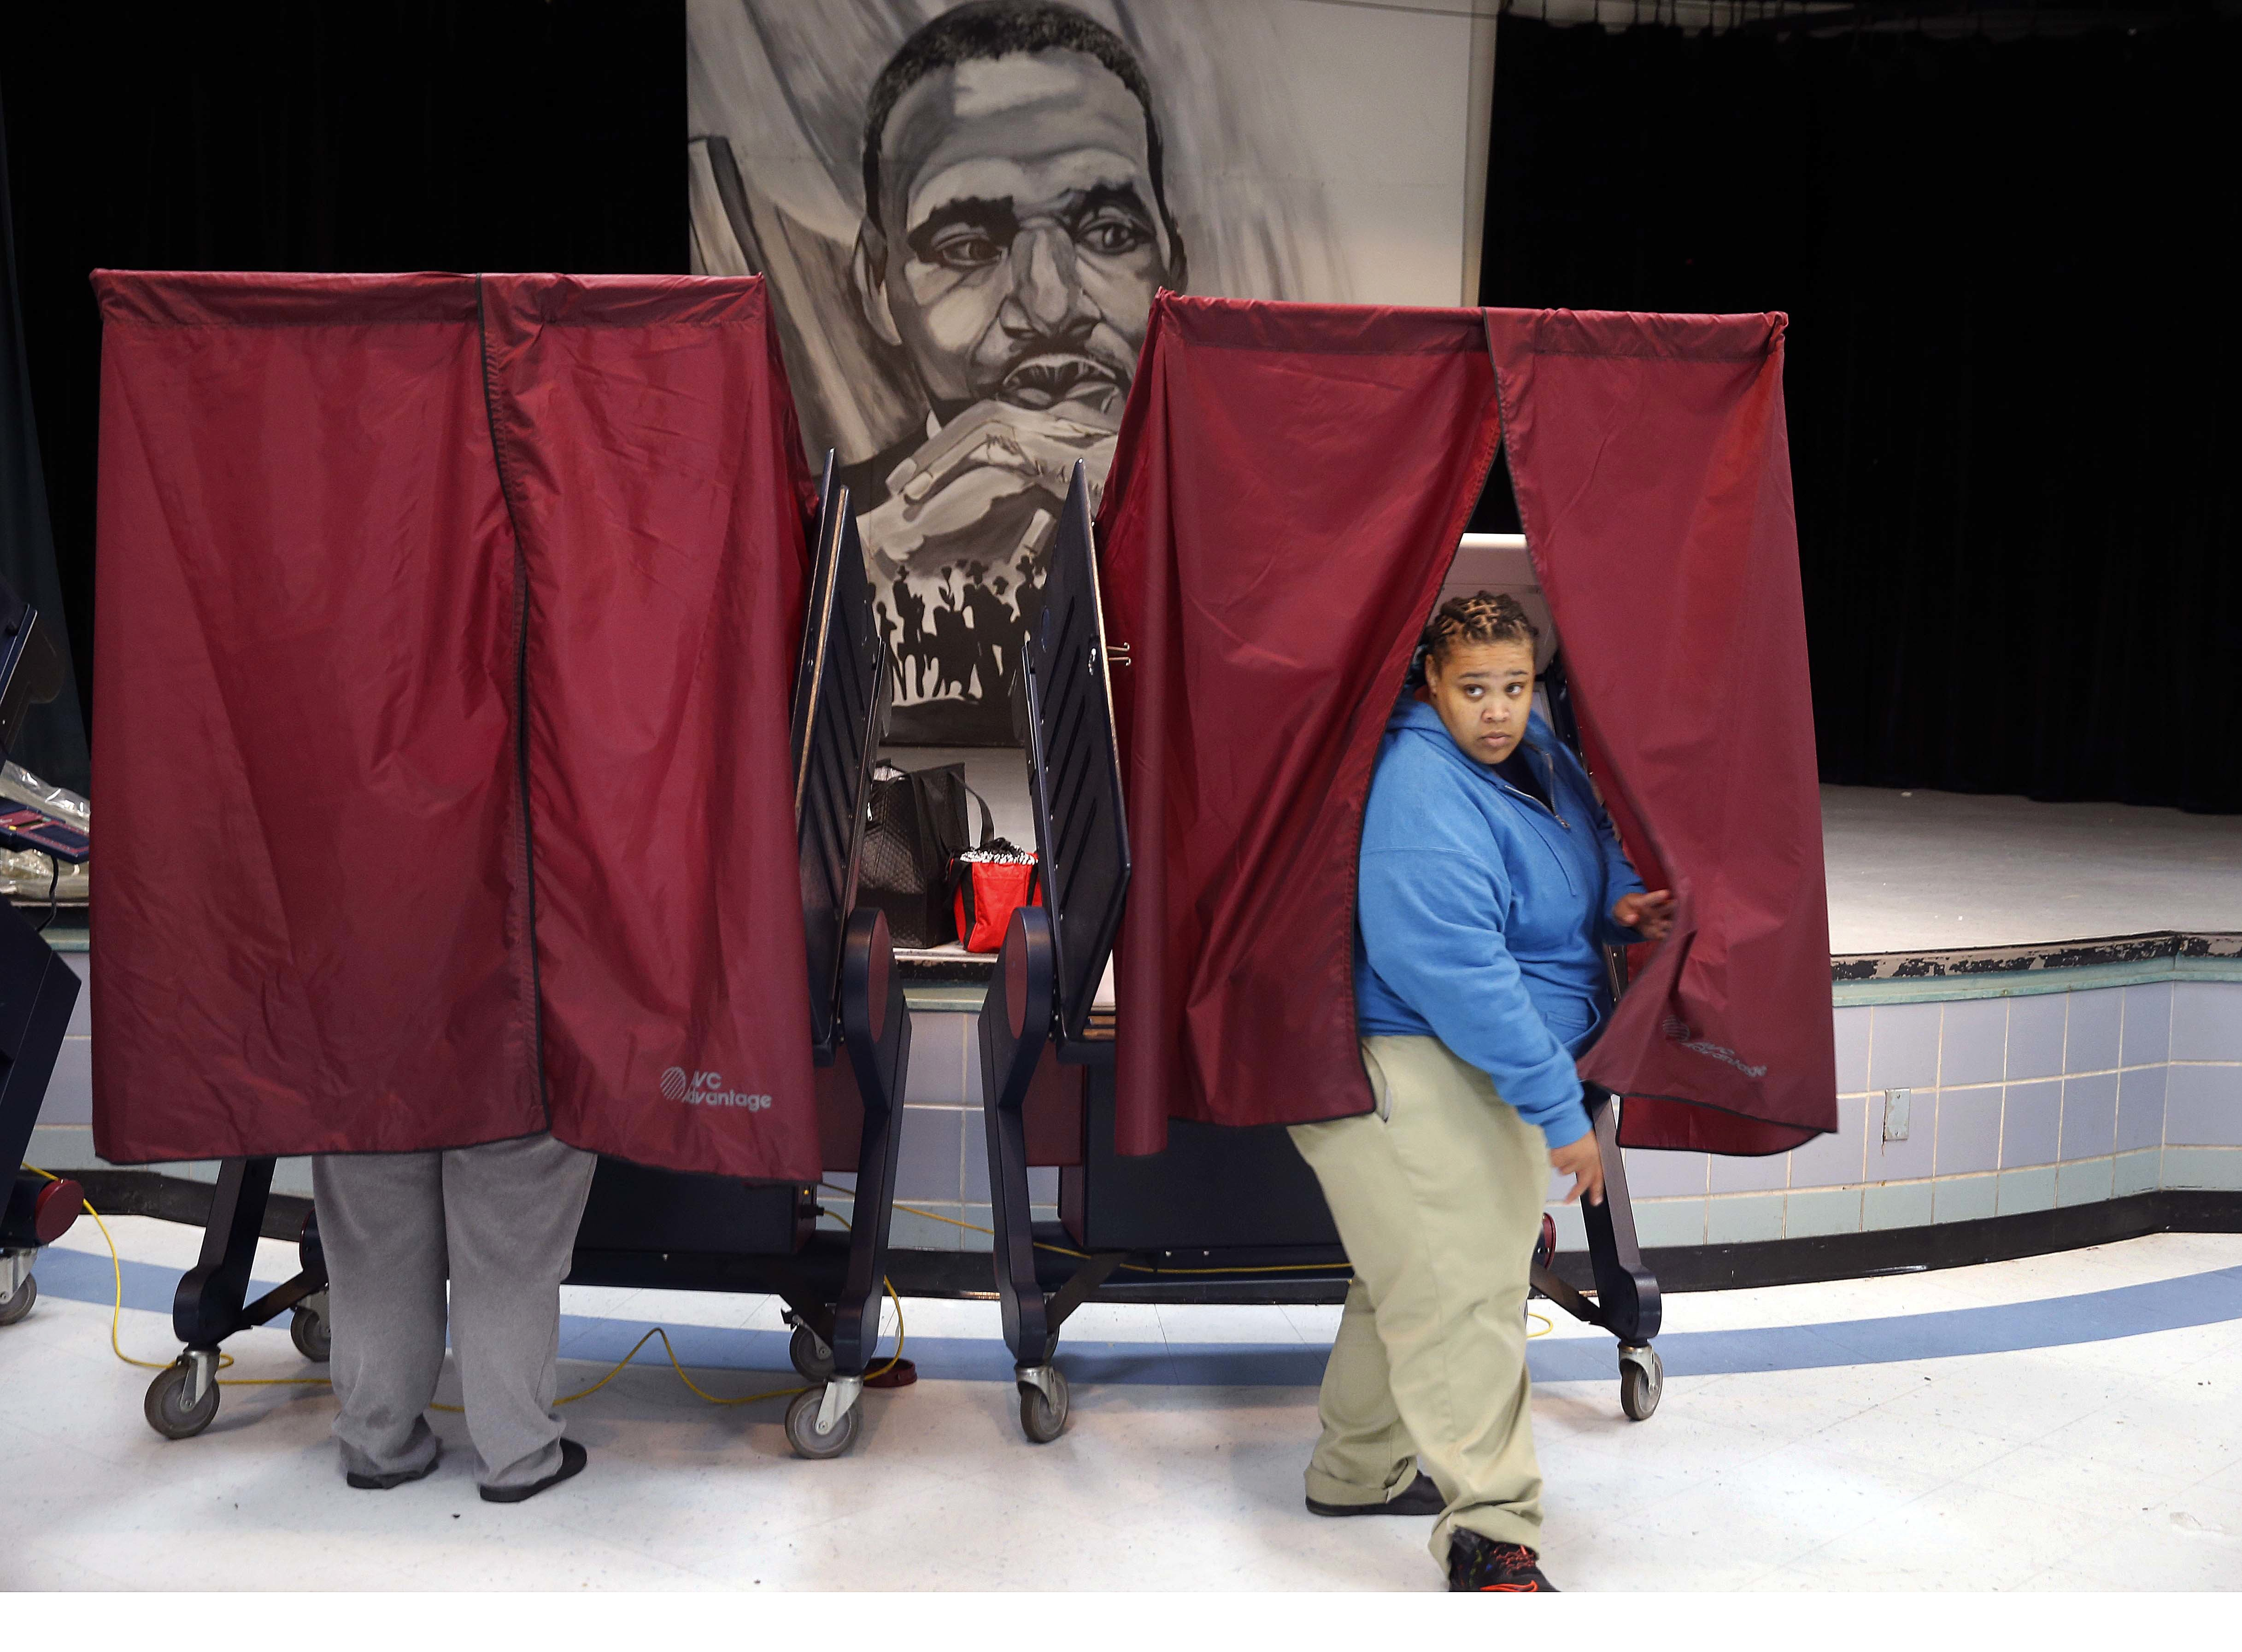 Ronique Slack exits a polling booth after casting her vote on Election Day at the Martin Luther King, Jr. Charter School in the Lower 9th Ward of New Orleans.